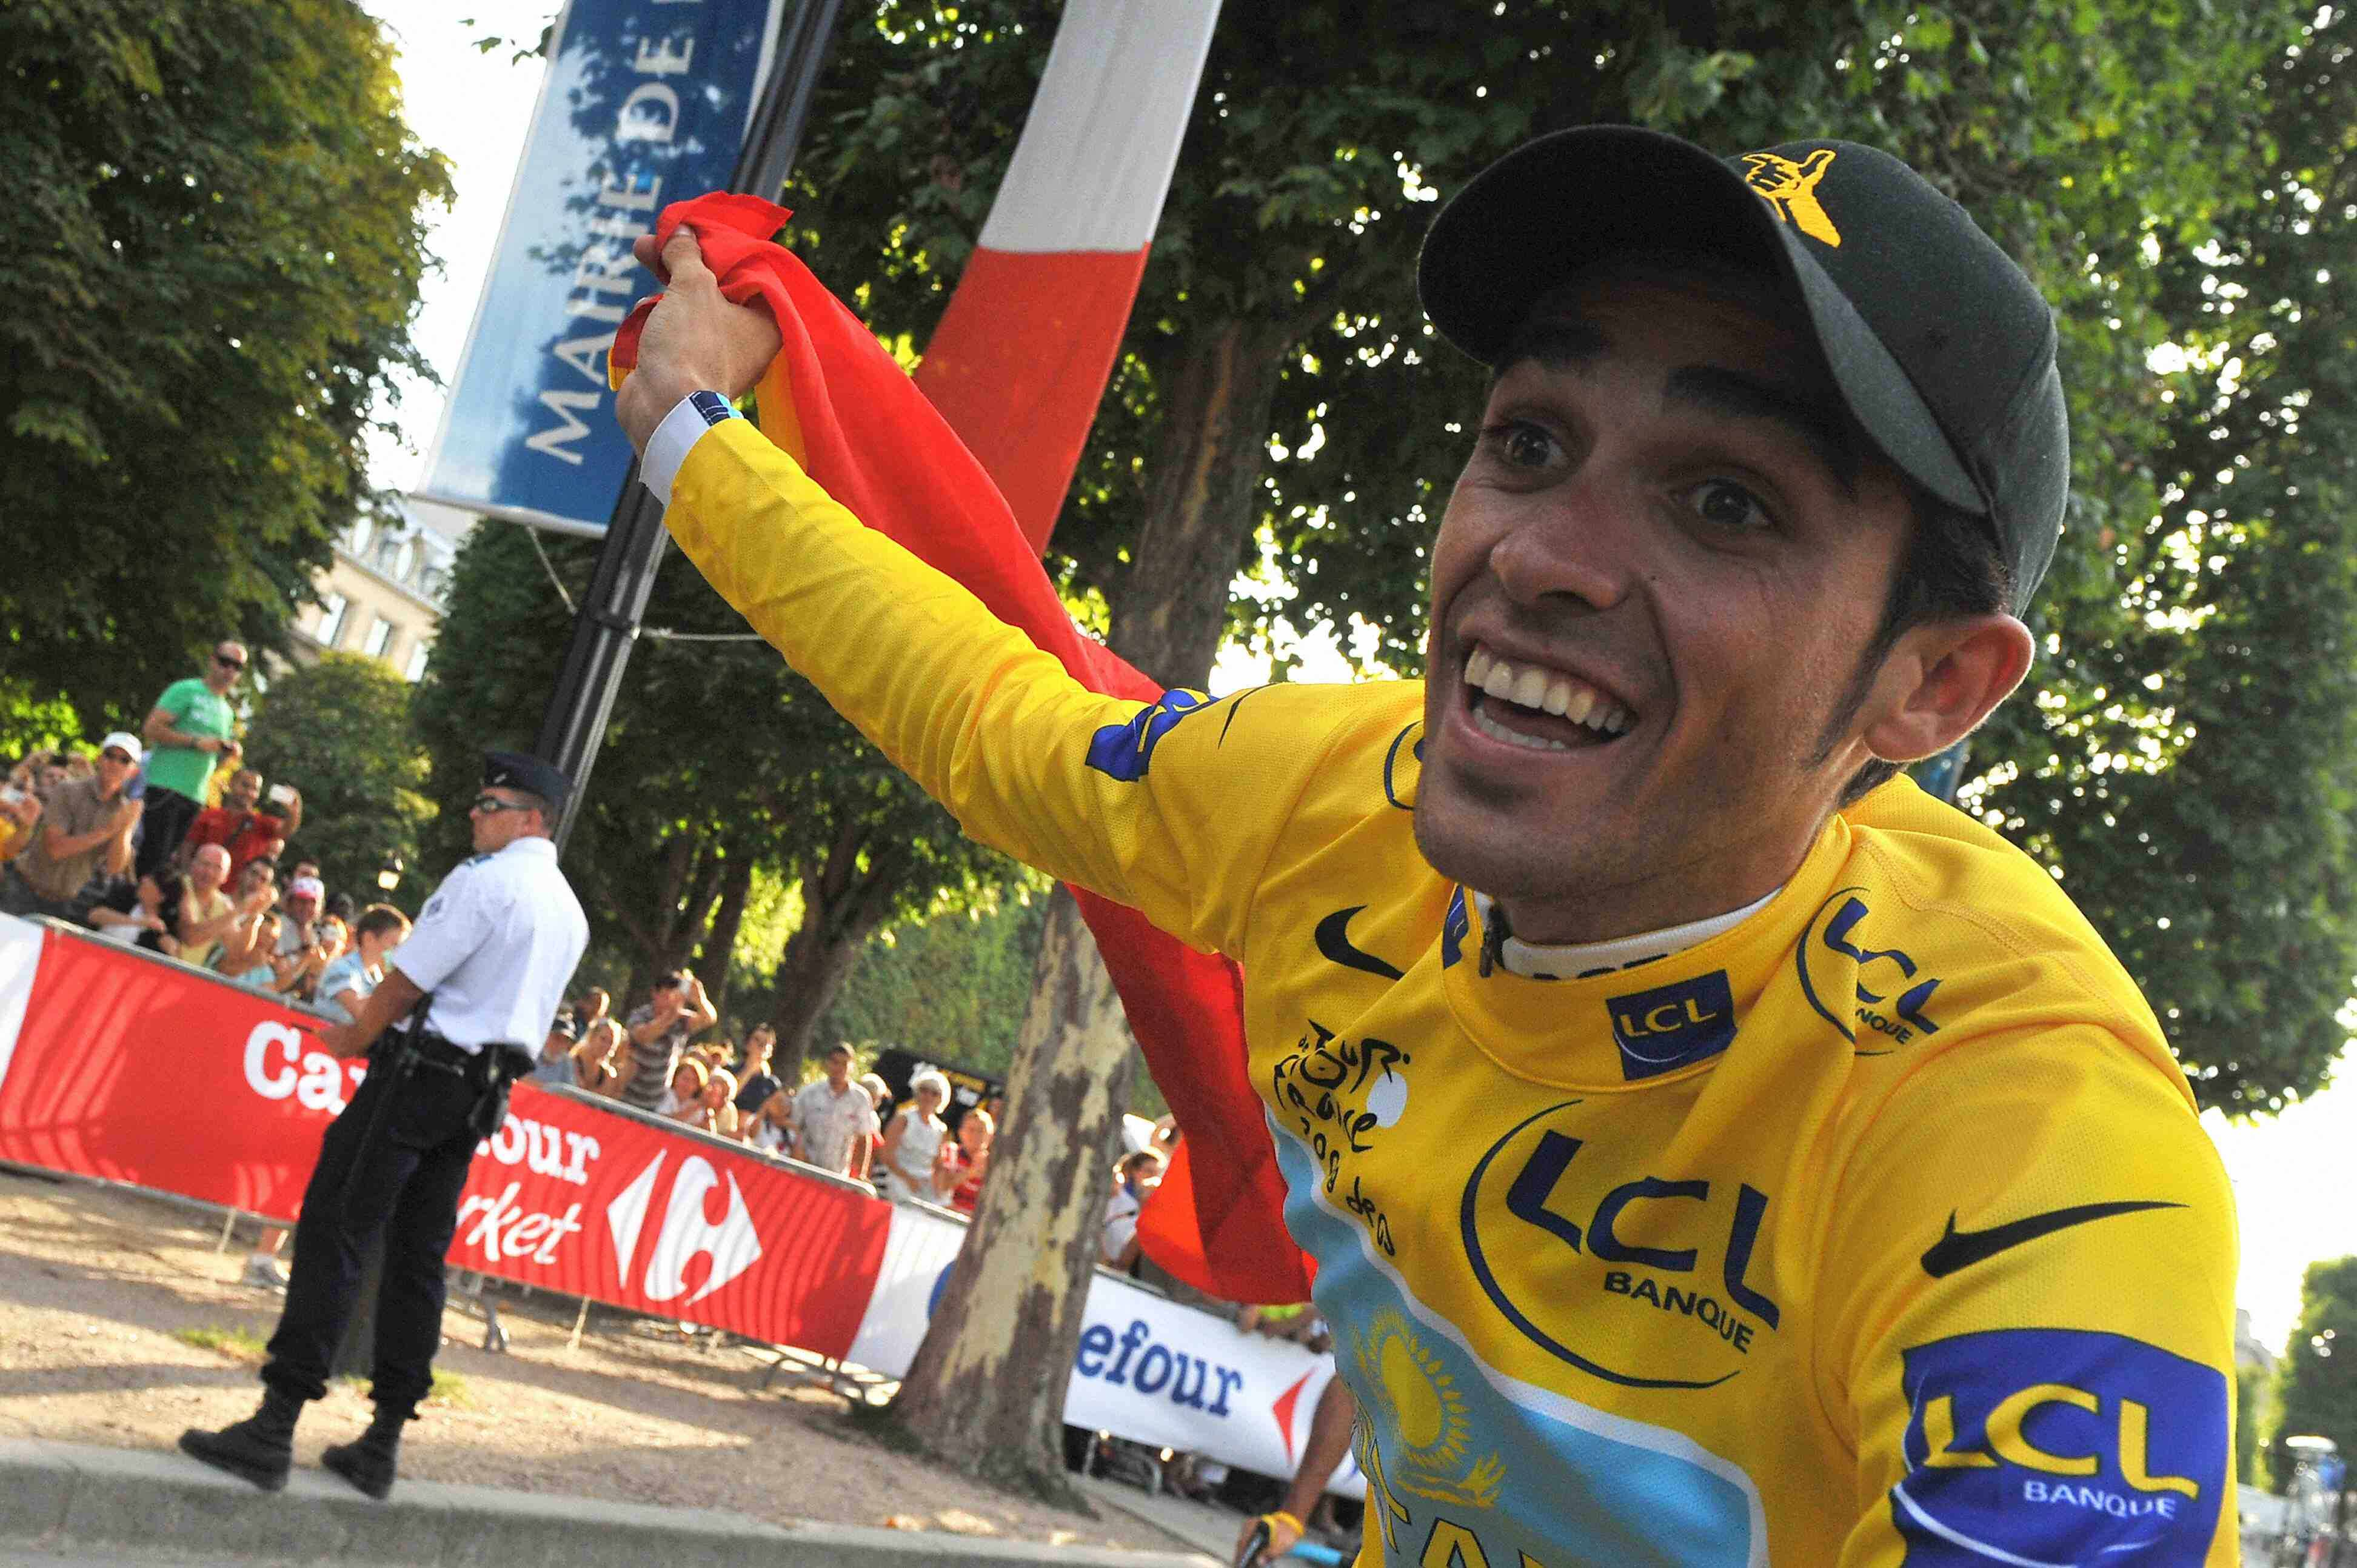 2009 Tour de France winner Alberto Contador on the Champs-Elysees July 26.